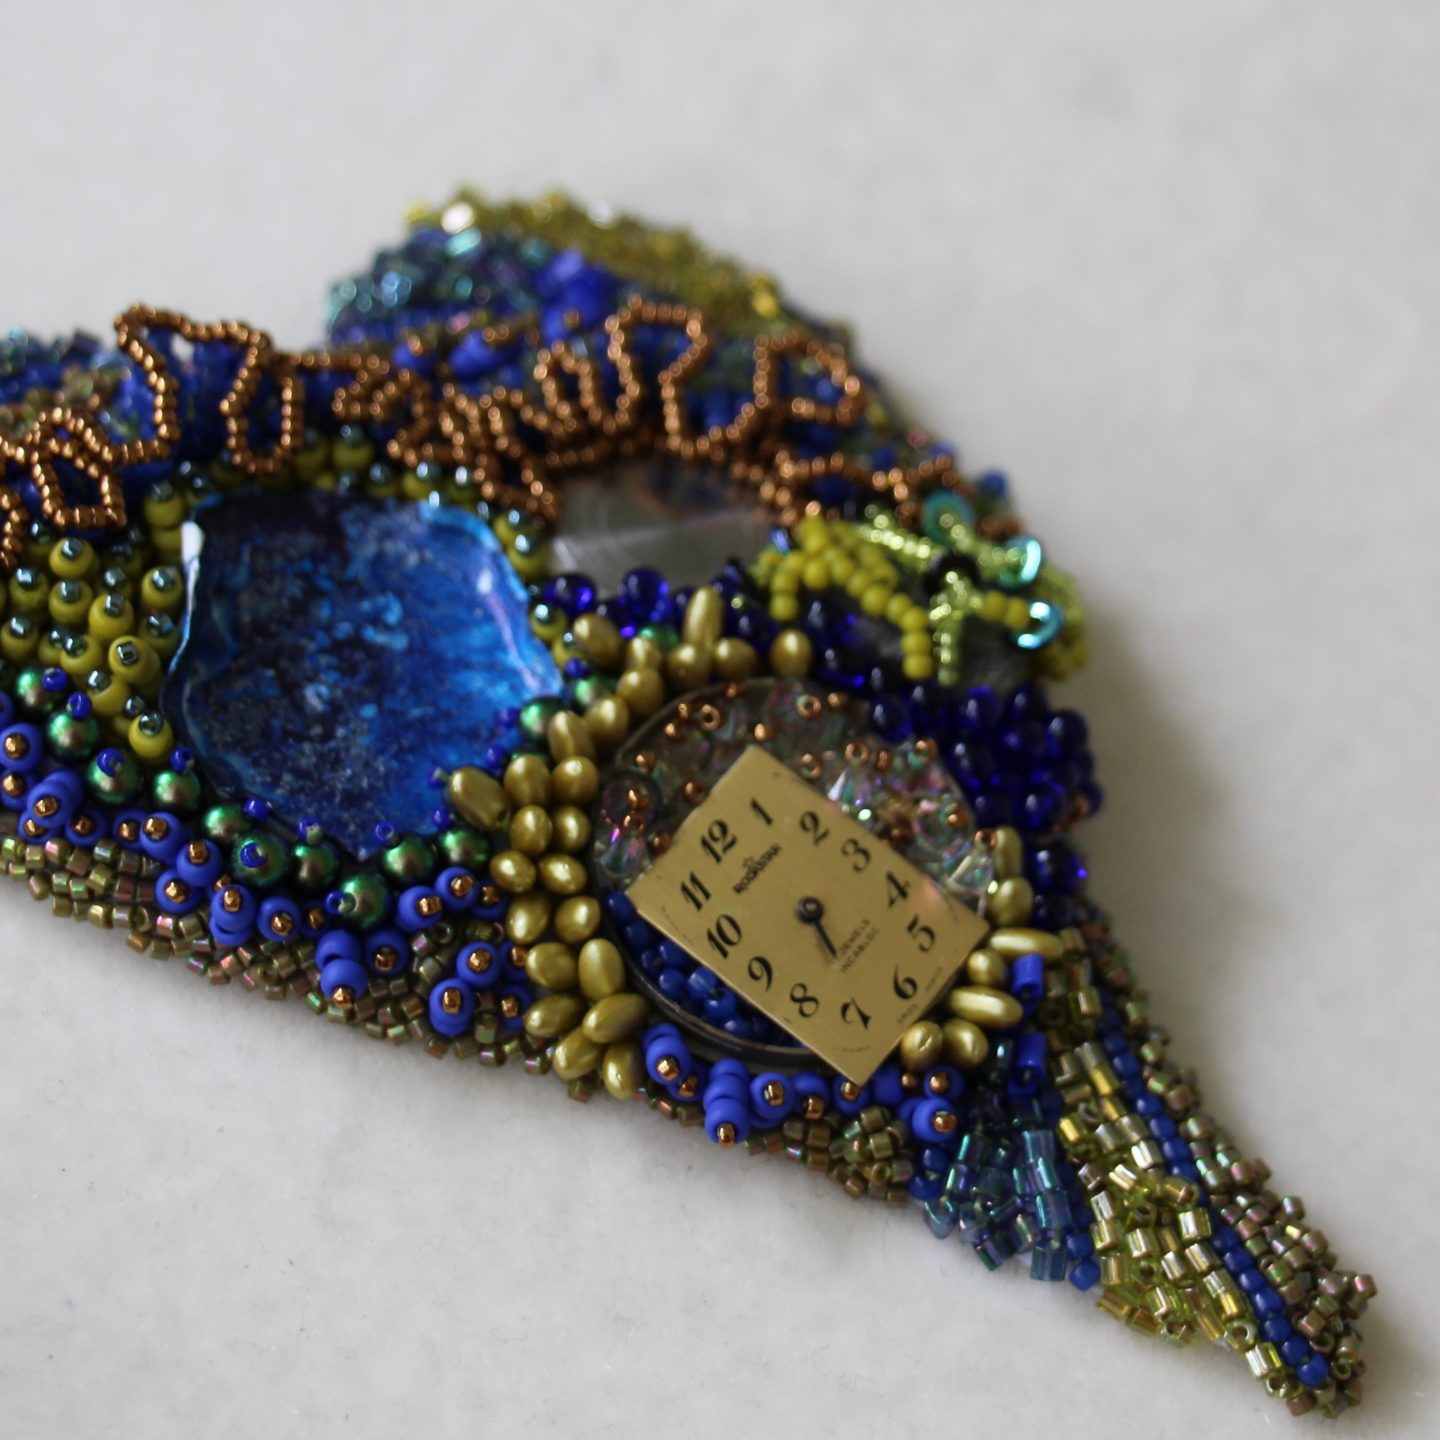 The Freeform Wars!  Peyote Stitch or Intuitive Bead Embroidery?